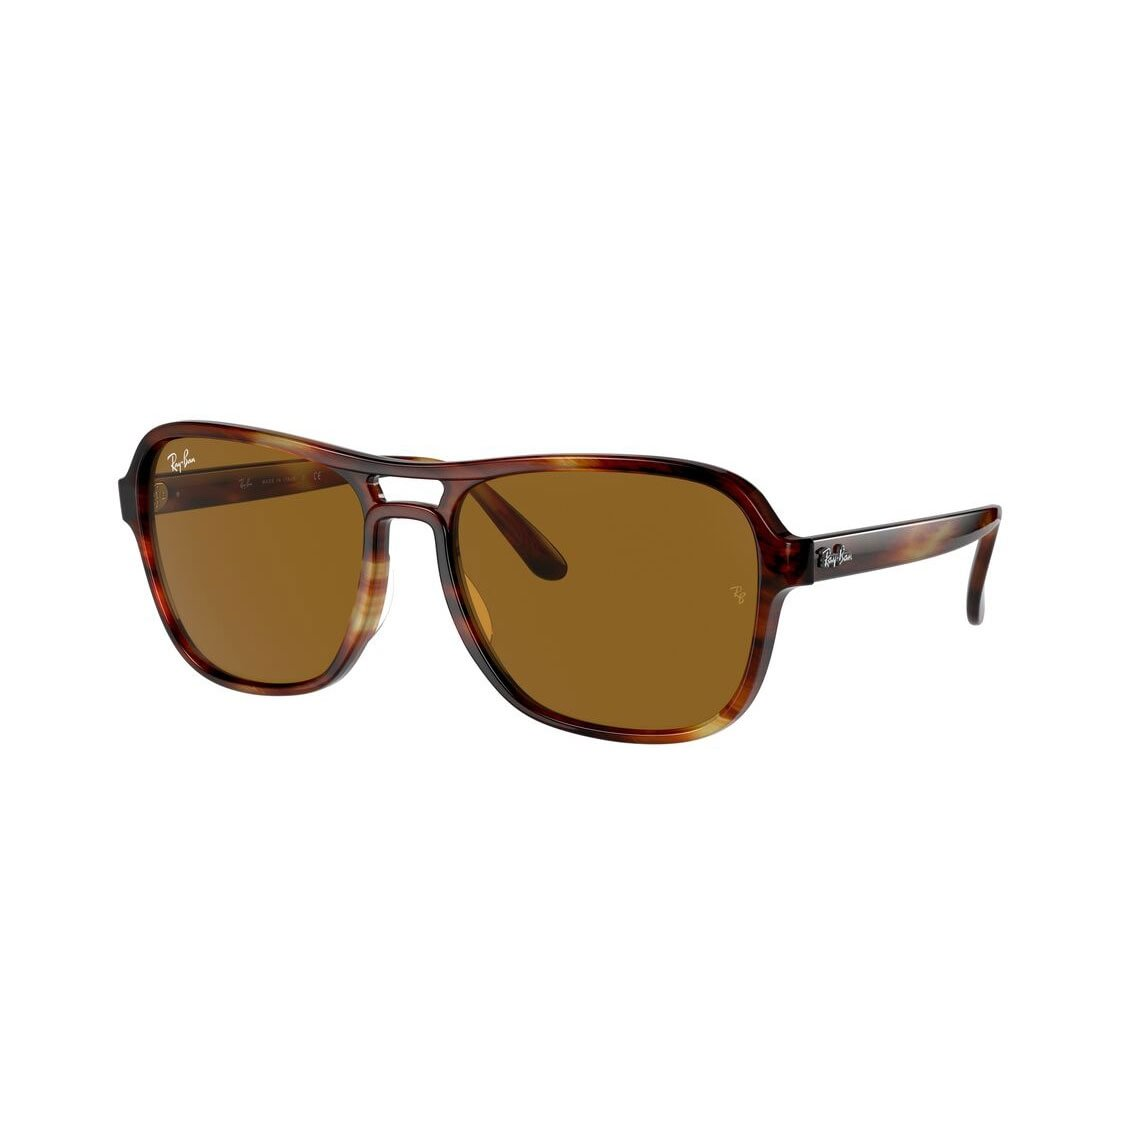 Ray-Ban State Side RB4356 954/33 5817